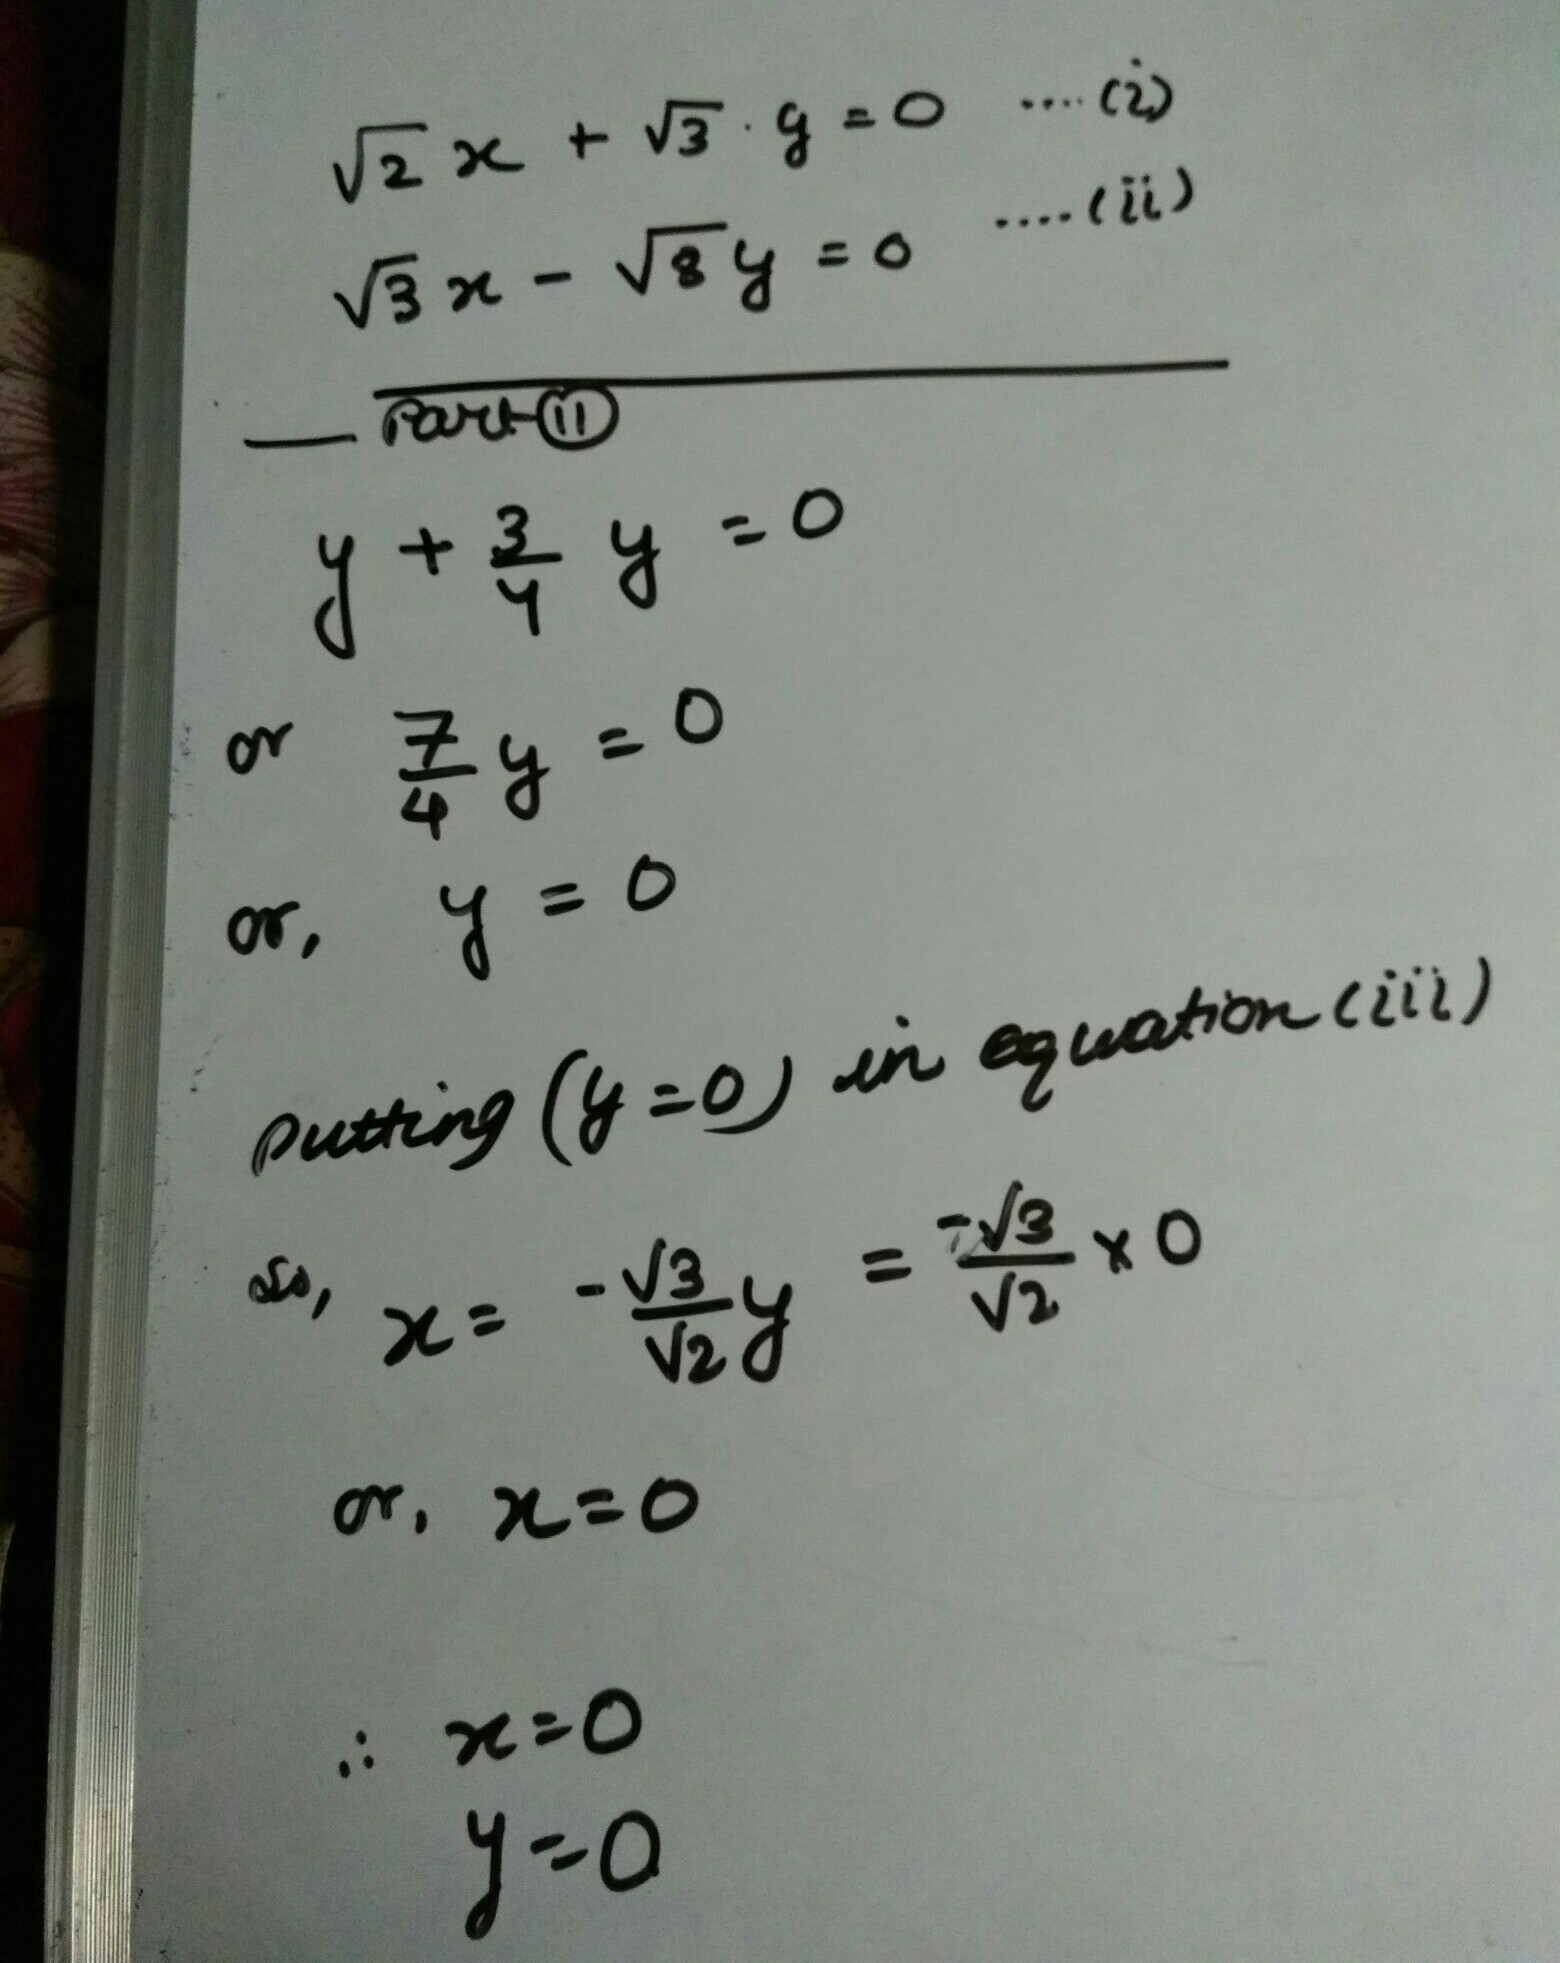 2x 3y 0 3x 8y 0 Solve The Following Pair Of Linear